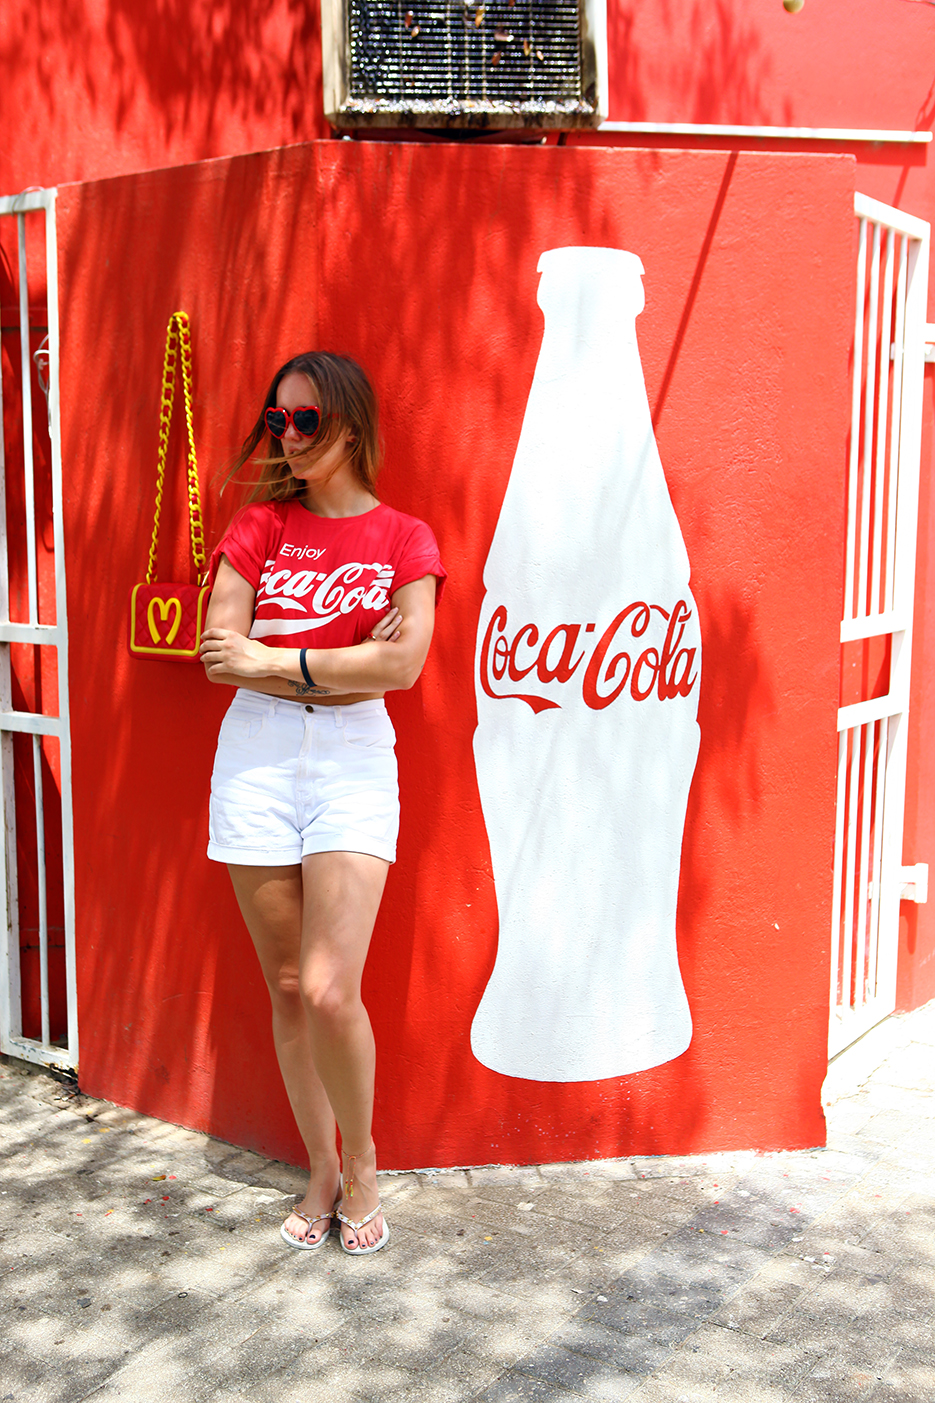 POSE-cocacola-crazy-2